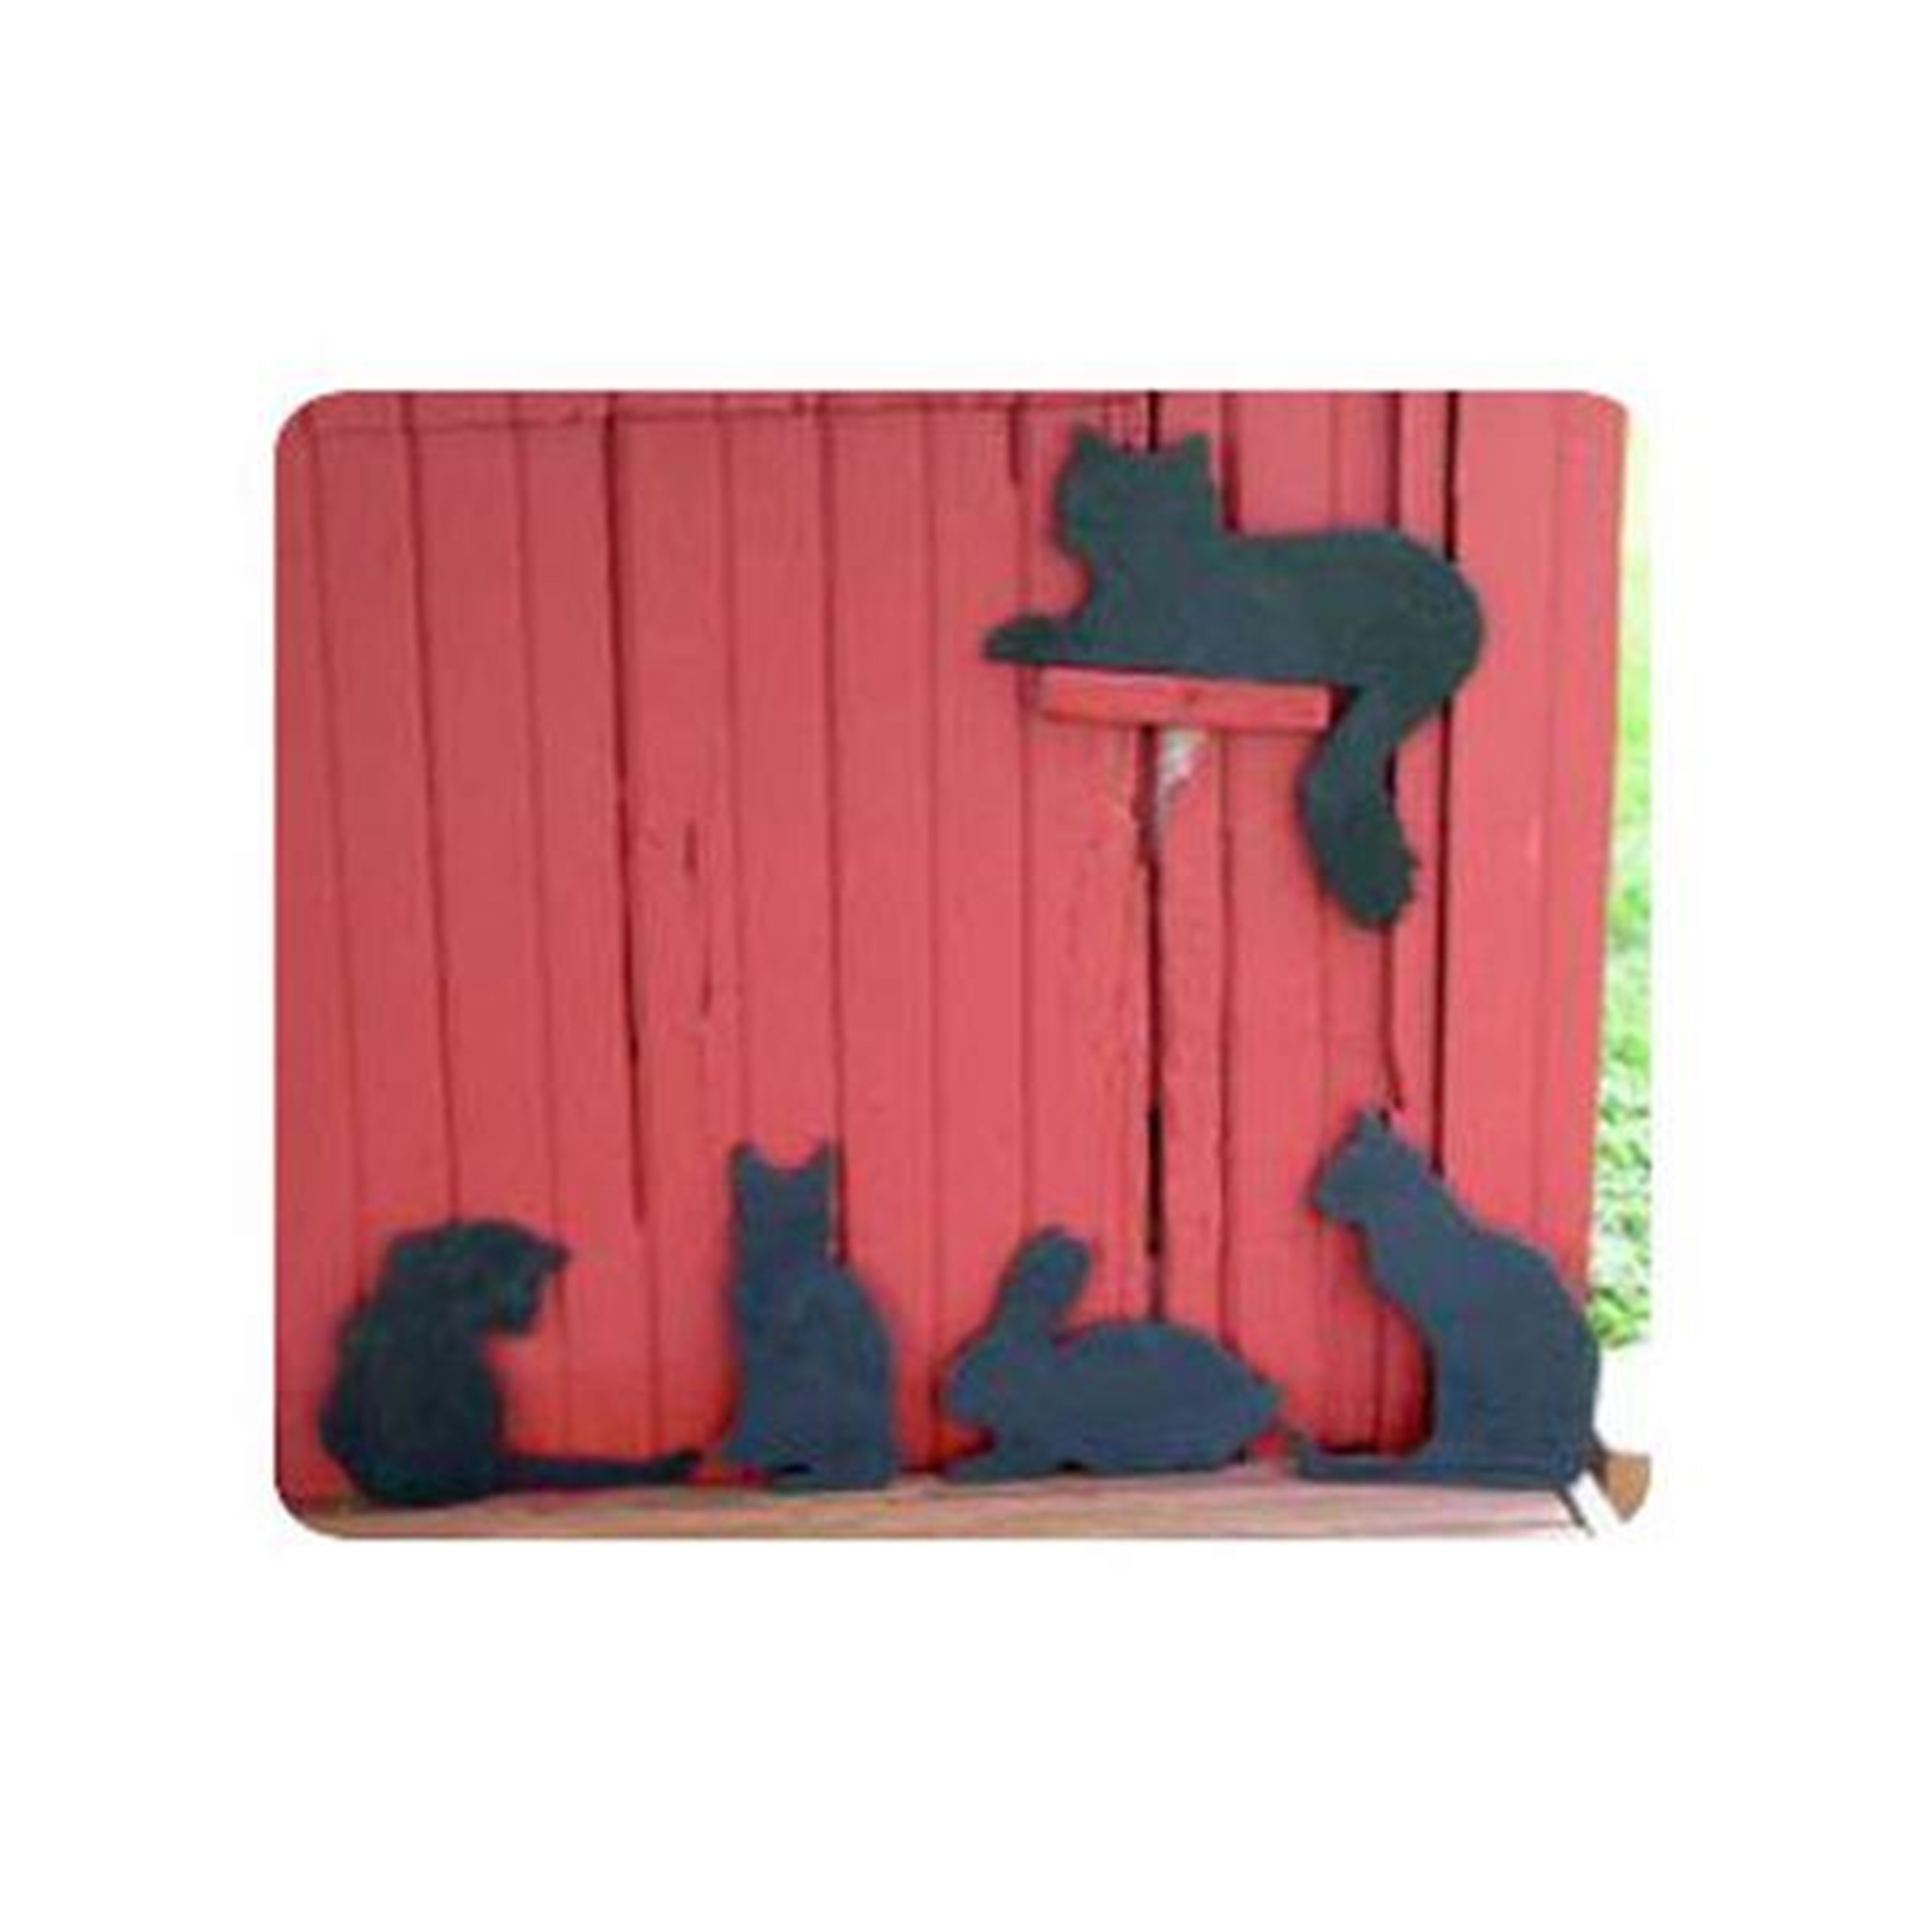 Woodworking Project Paper Plan to Build Cats and Rabbit Shadow